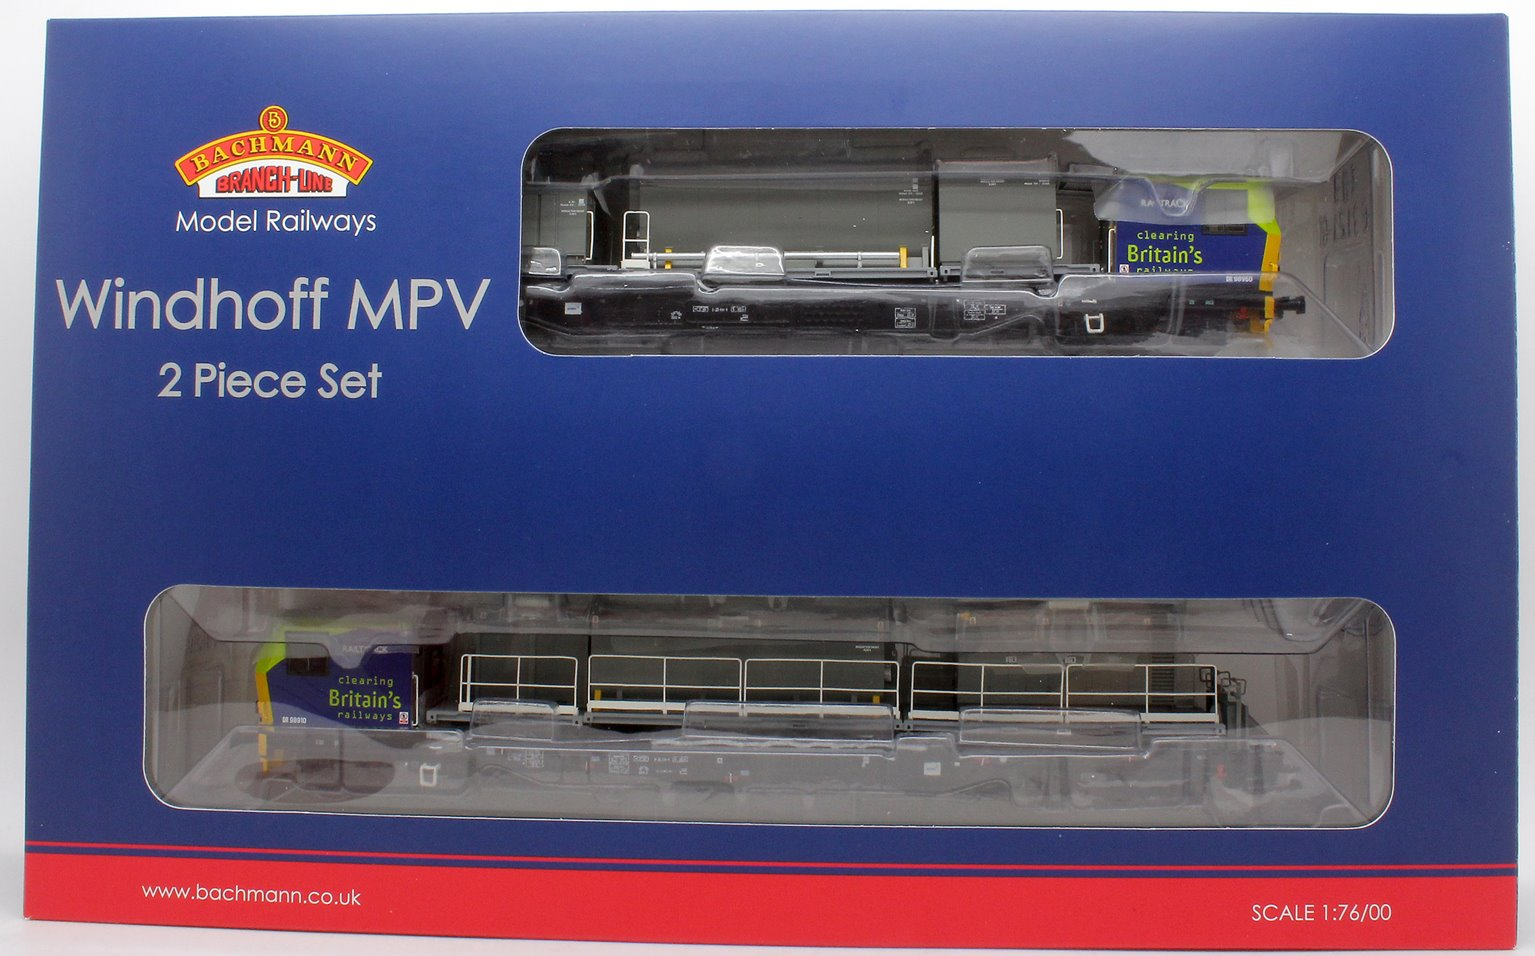 Windhoff MPV Multi-Purpose Master and Slave Railtrack